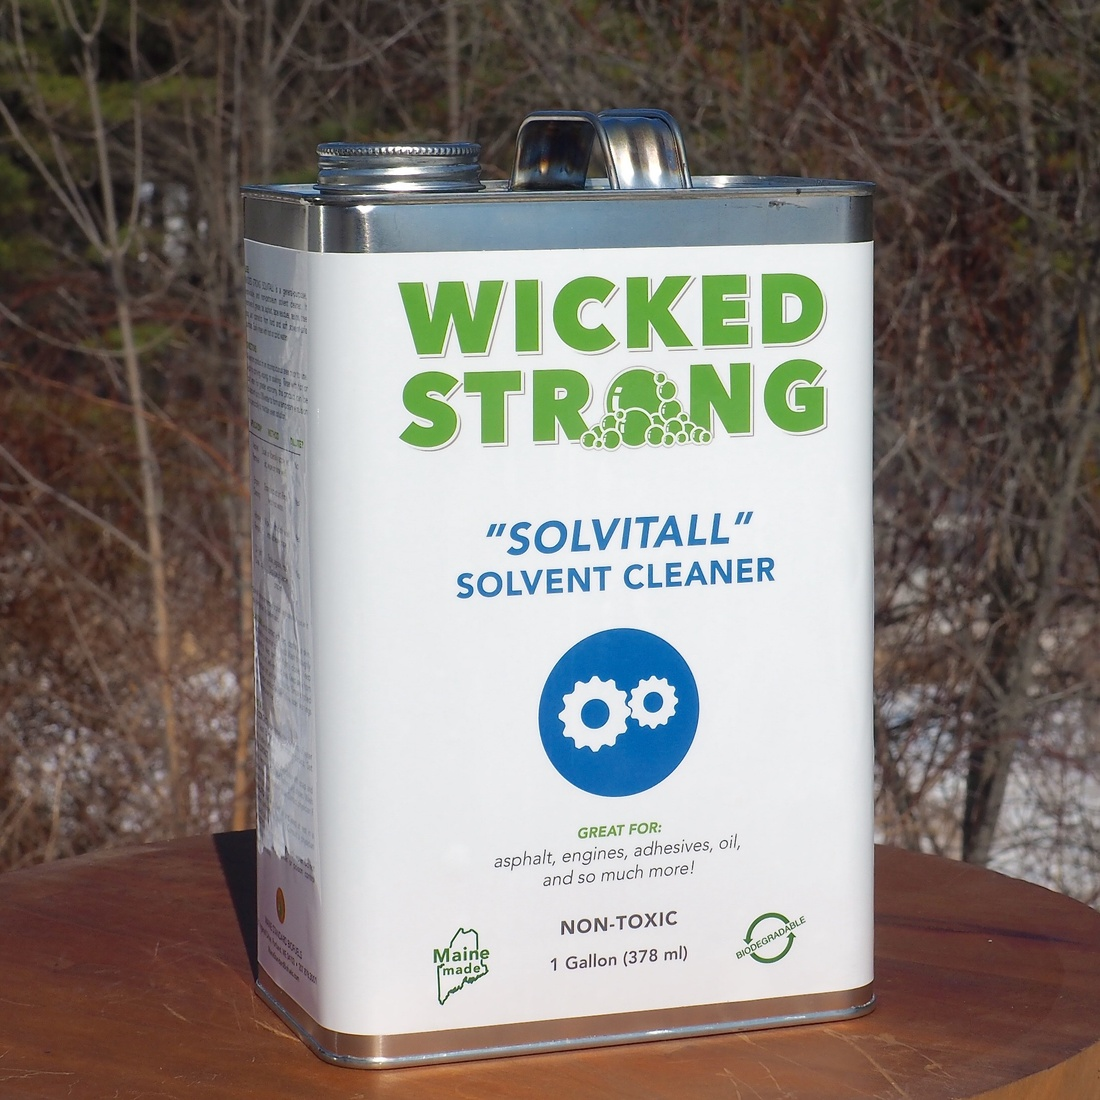 Wicked Strong Solvital